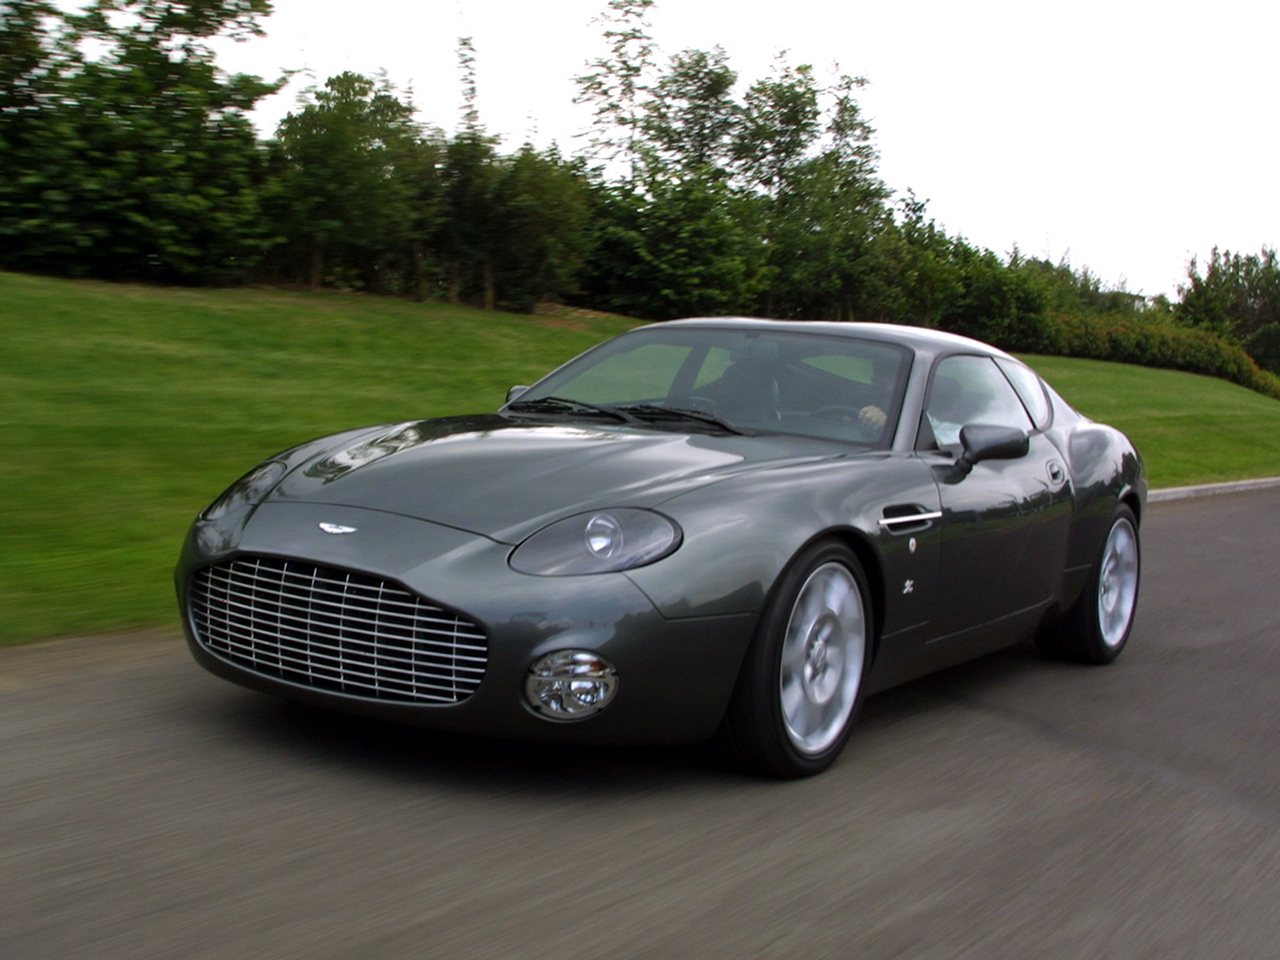 Aston martin db7 photo - 3